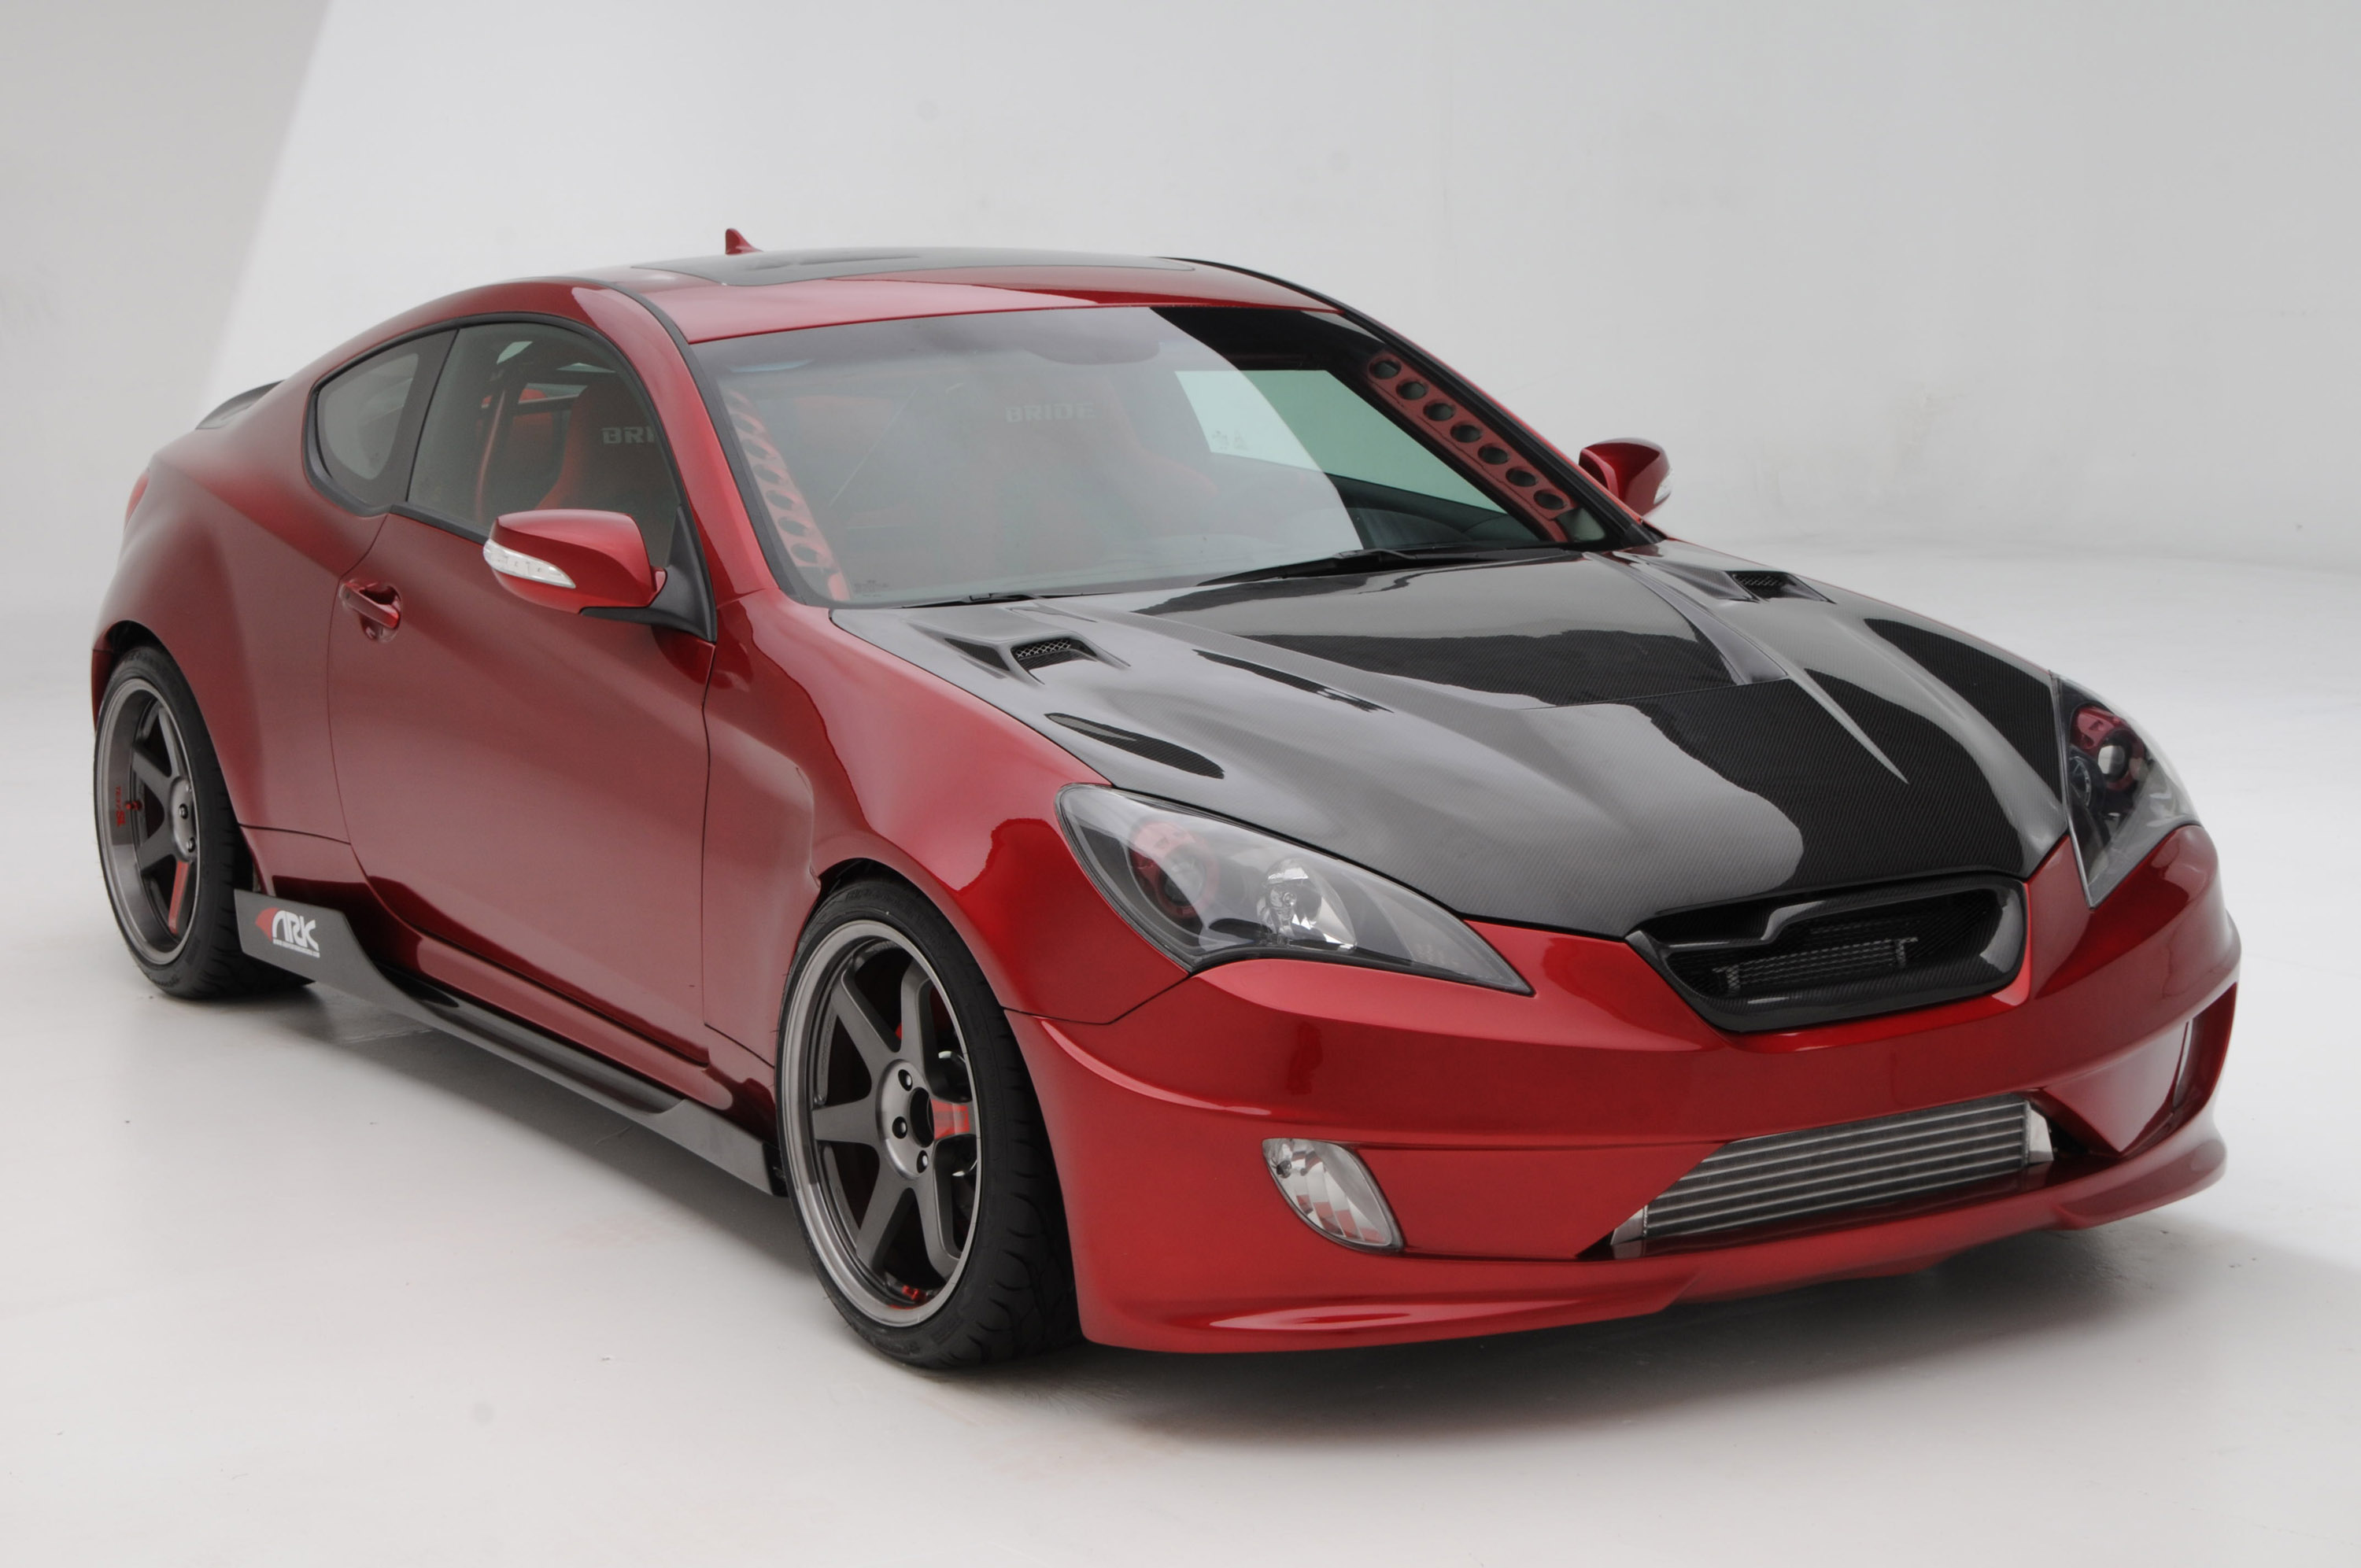 sema 2010 preview ark track time attack genesis coupe 3 8l. Black Bedroom Furniture Sets. Home Design Ideas